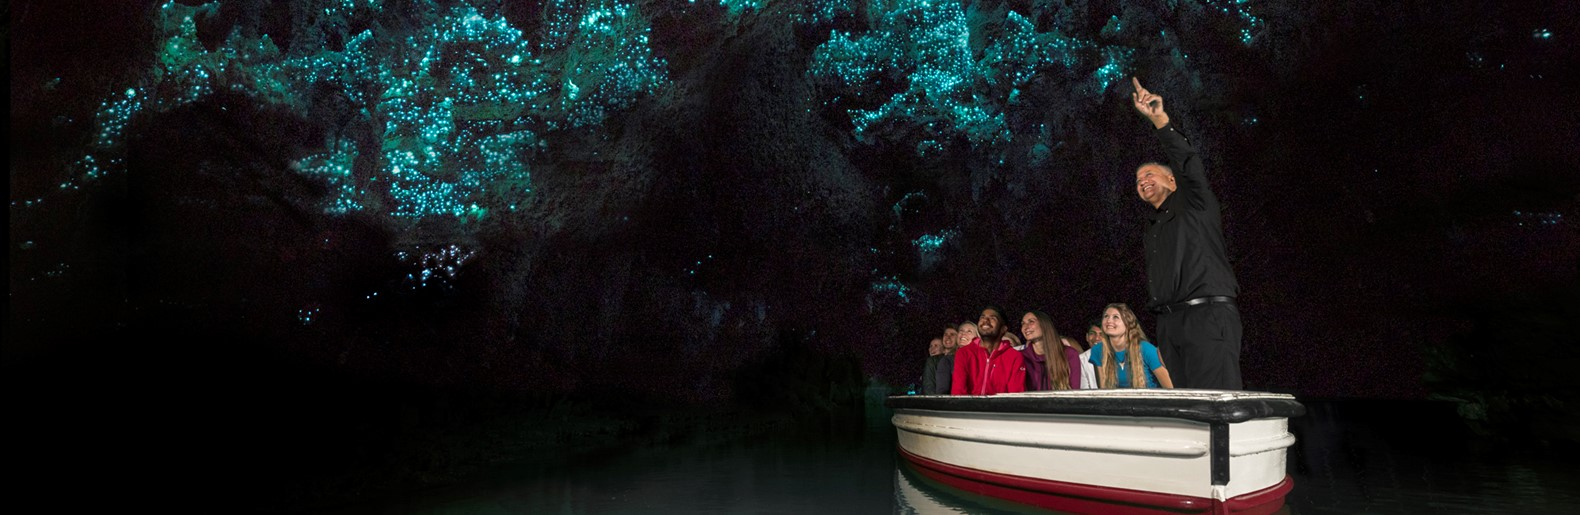 Waitomo Glowworm Caves, Discover Waitomo, New Zealand.jpg